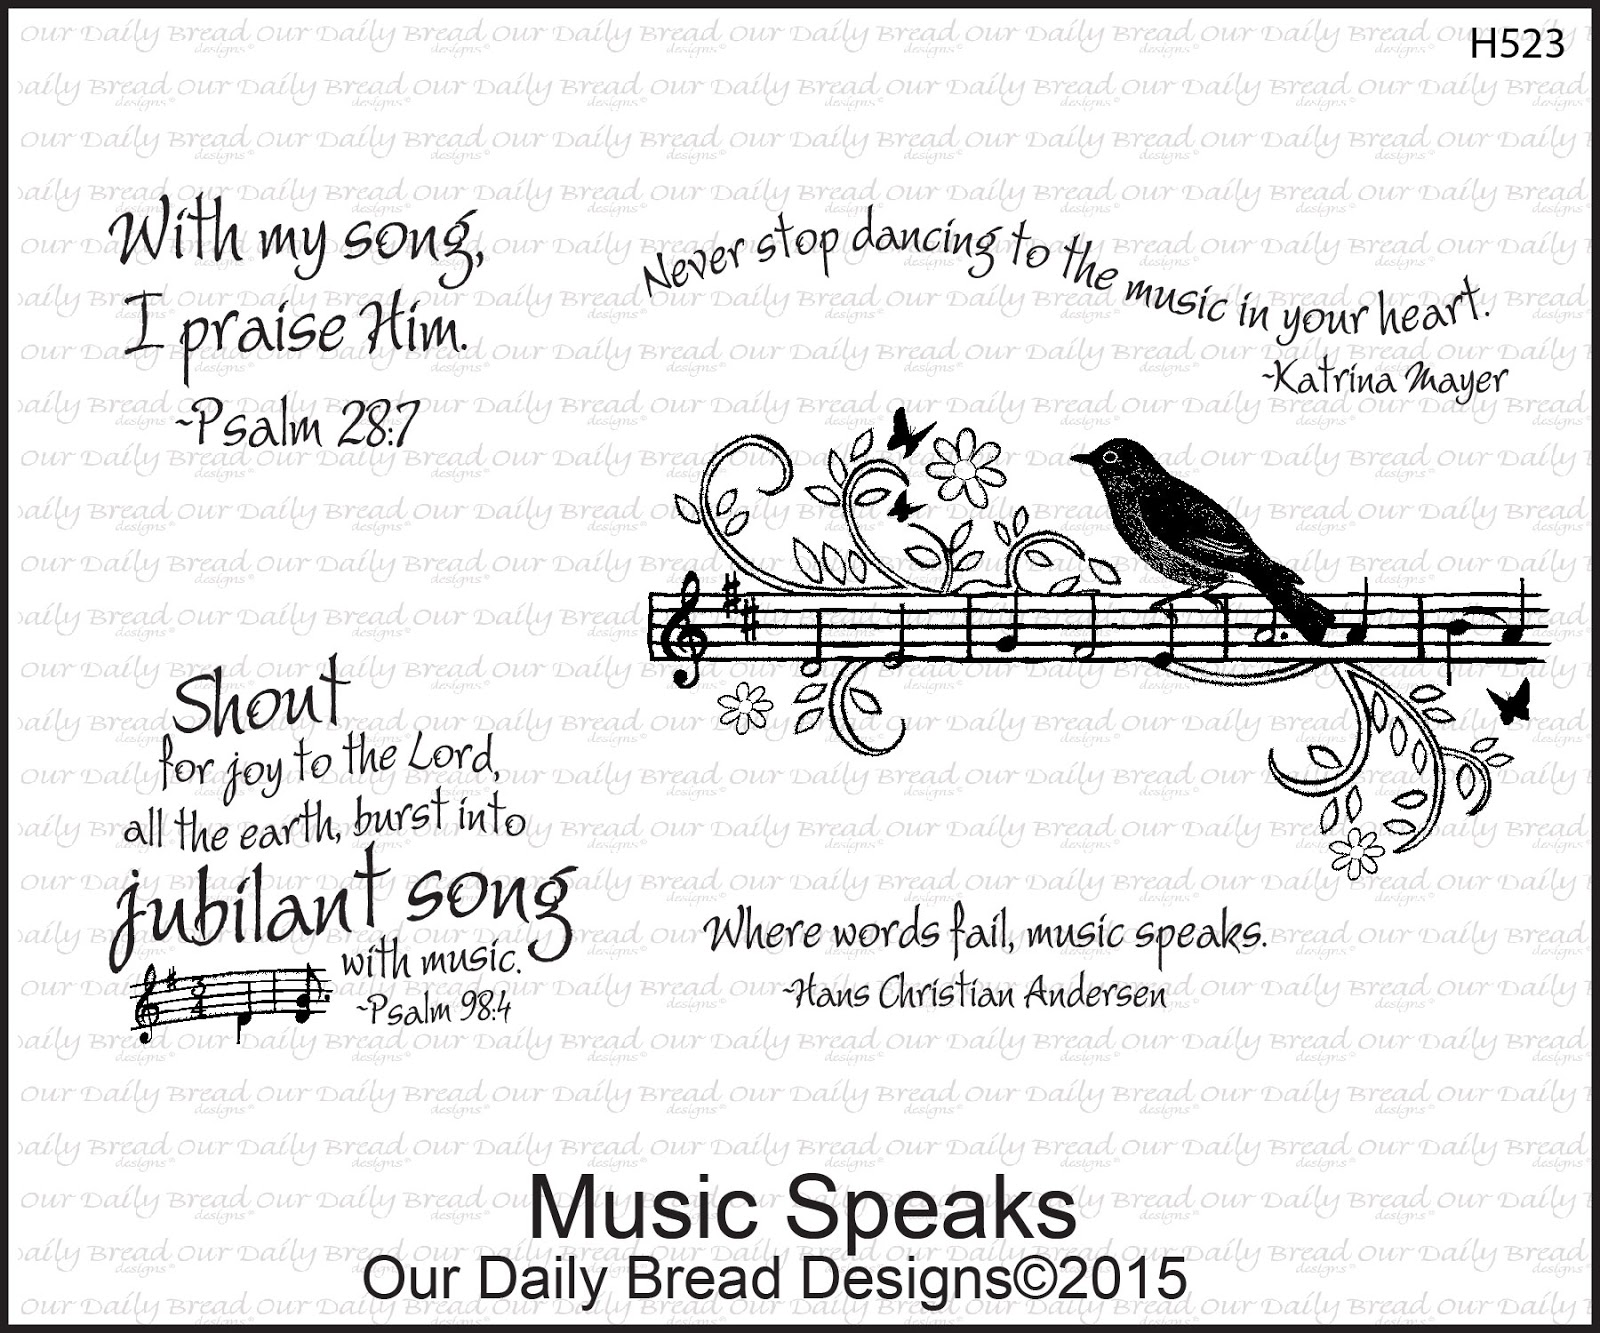 https://www.ourdailybreaddesigns.com/index.php/h523-music-speaks.html